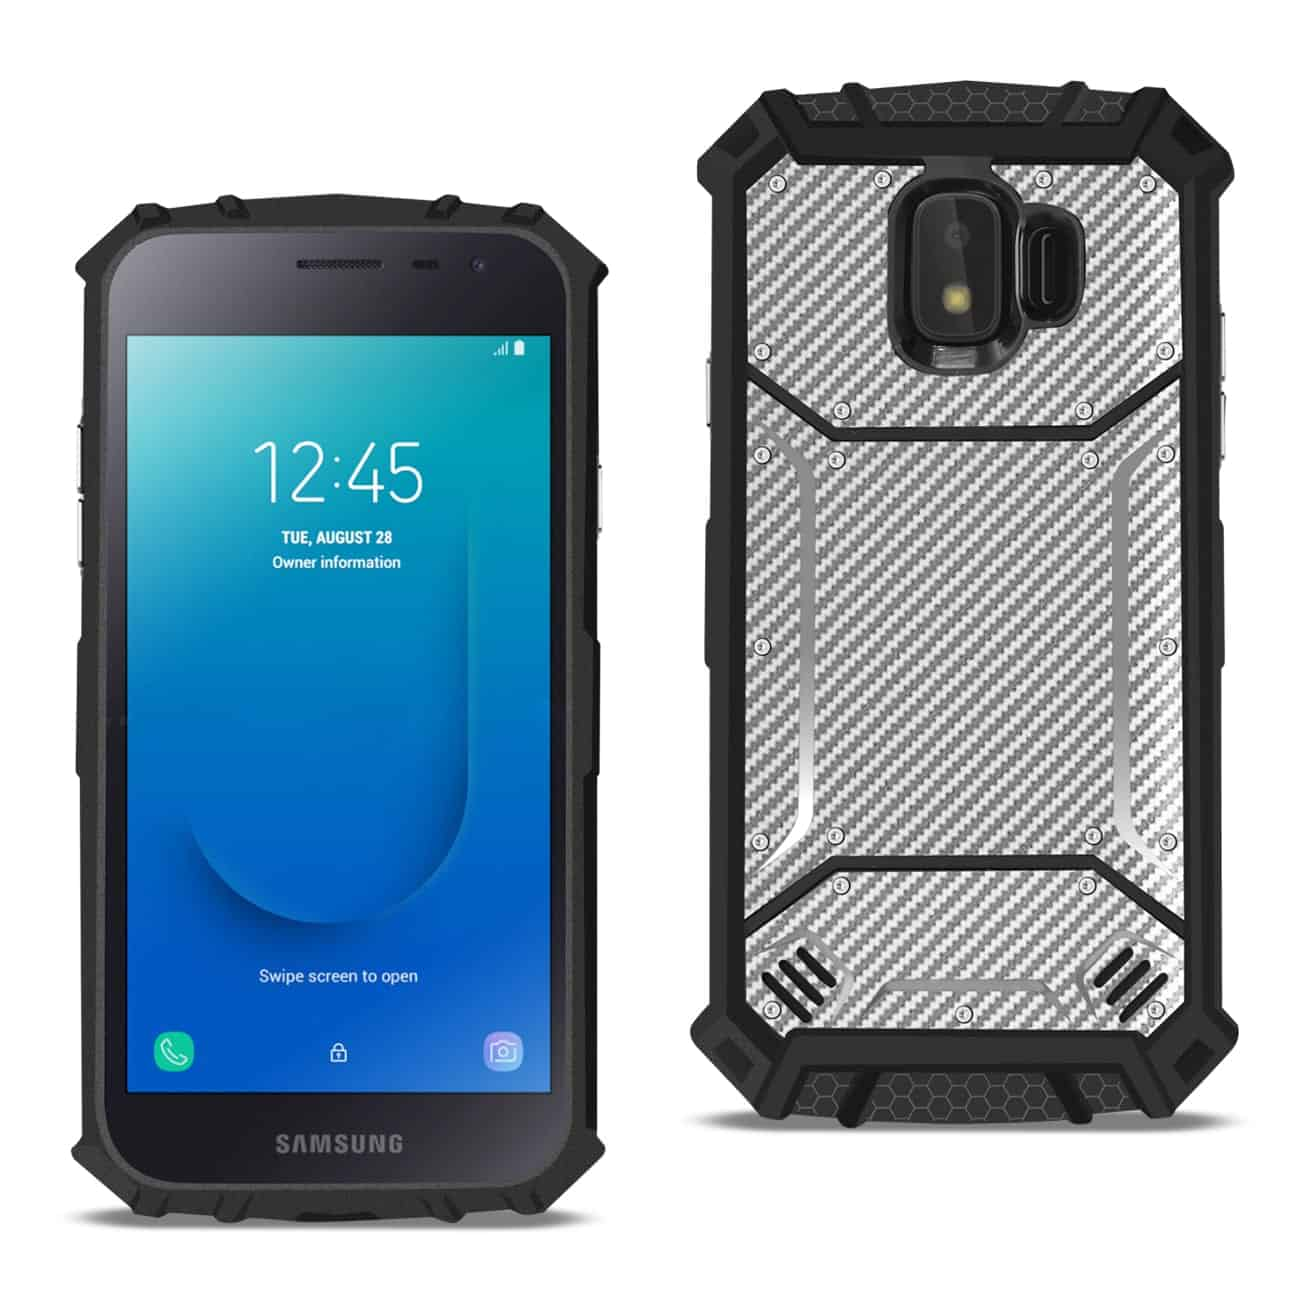 Samsung Galaxy J2 Pure Carbon Fiber Hard-shell Case In Gray